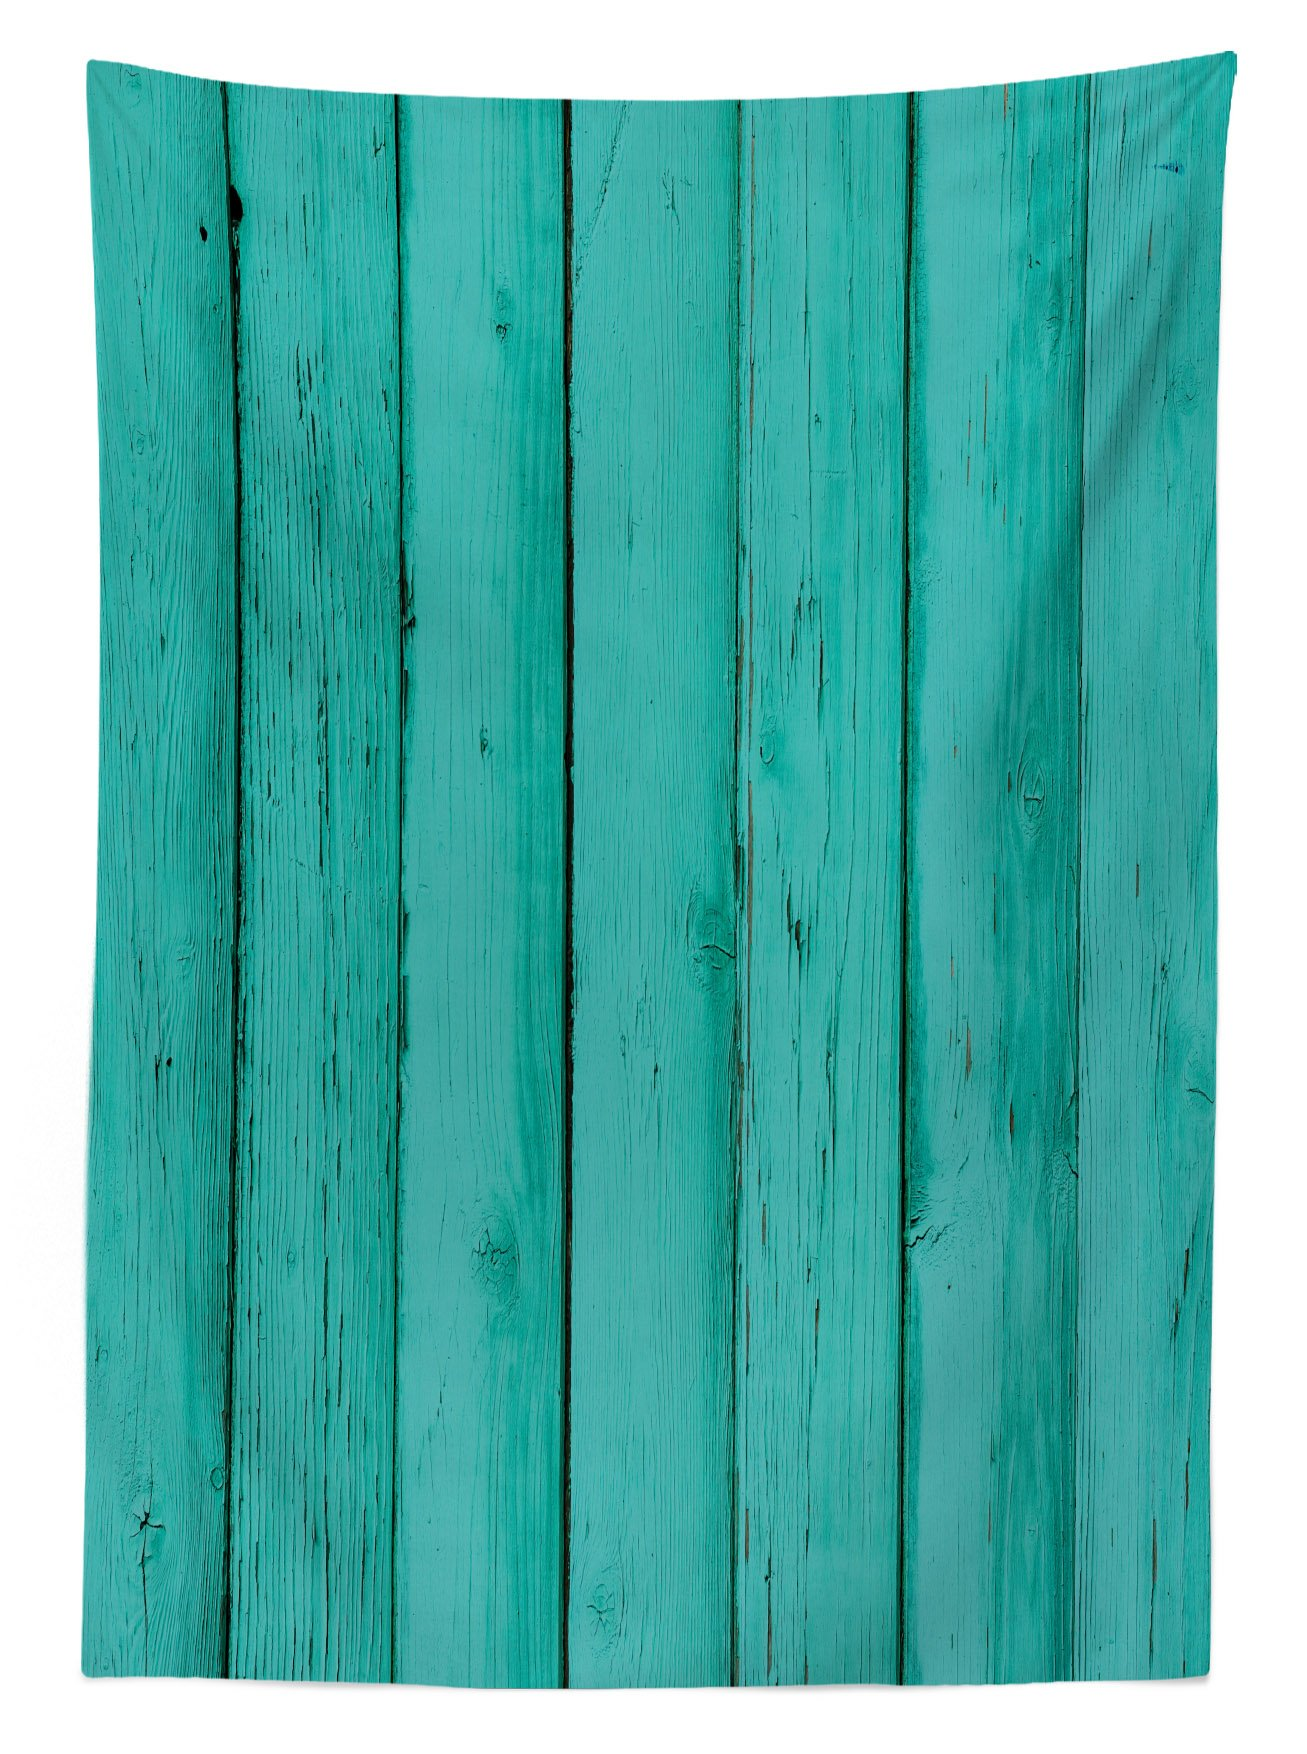 Lunarable Mint Outdoor Tablecloth, Old Wood Rustic Oak Plank Background with Vertical Striped Vivid Woods Farm Barn Image, Decorative Washable Picnic Table Cloth, 58 X 120 inches, Sea Green by Lunarable (Image #2)